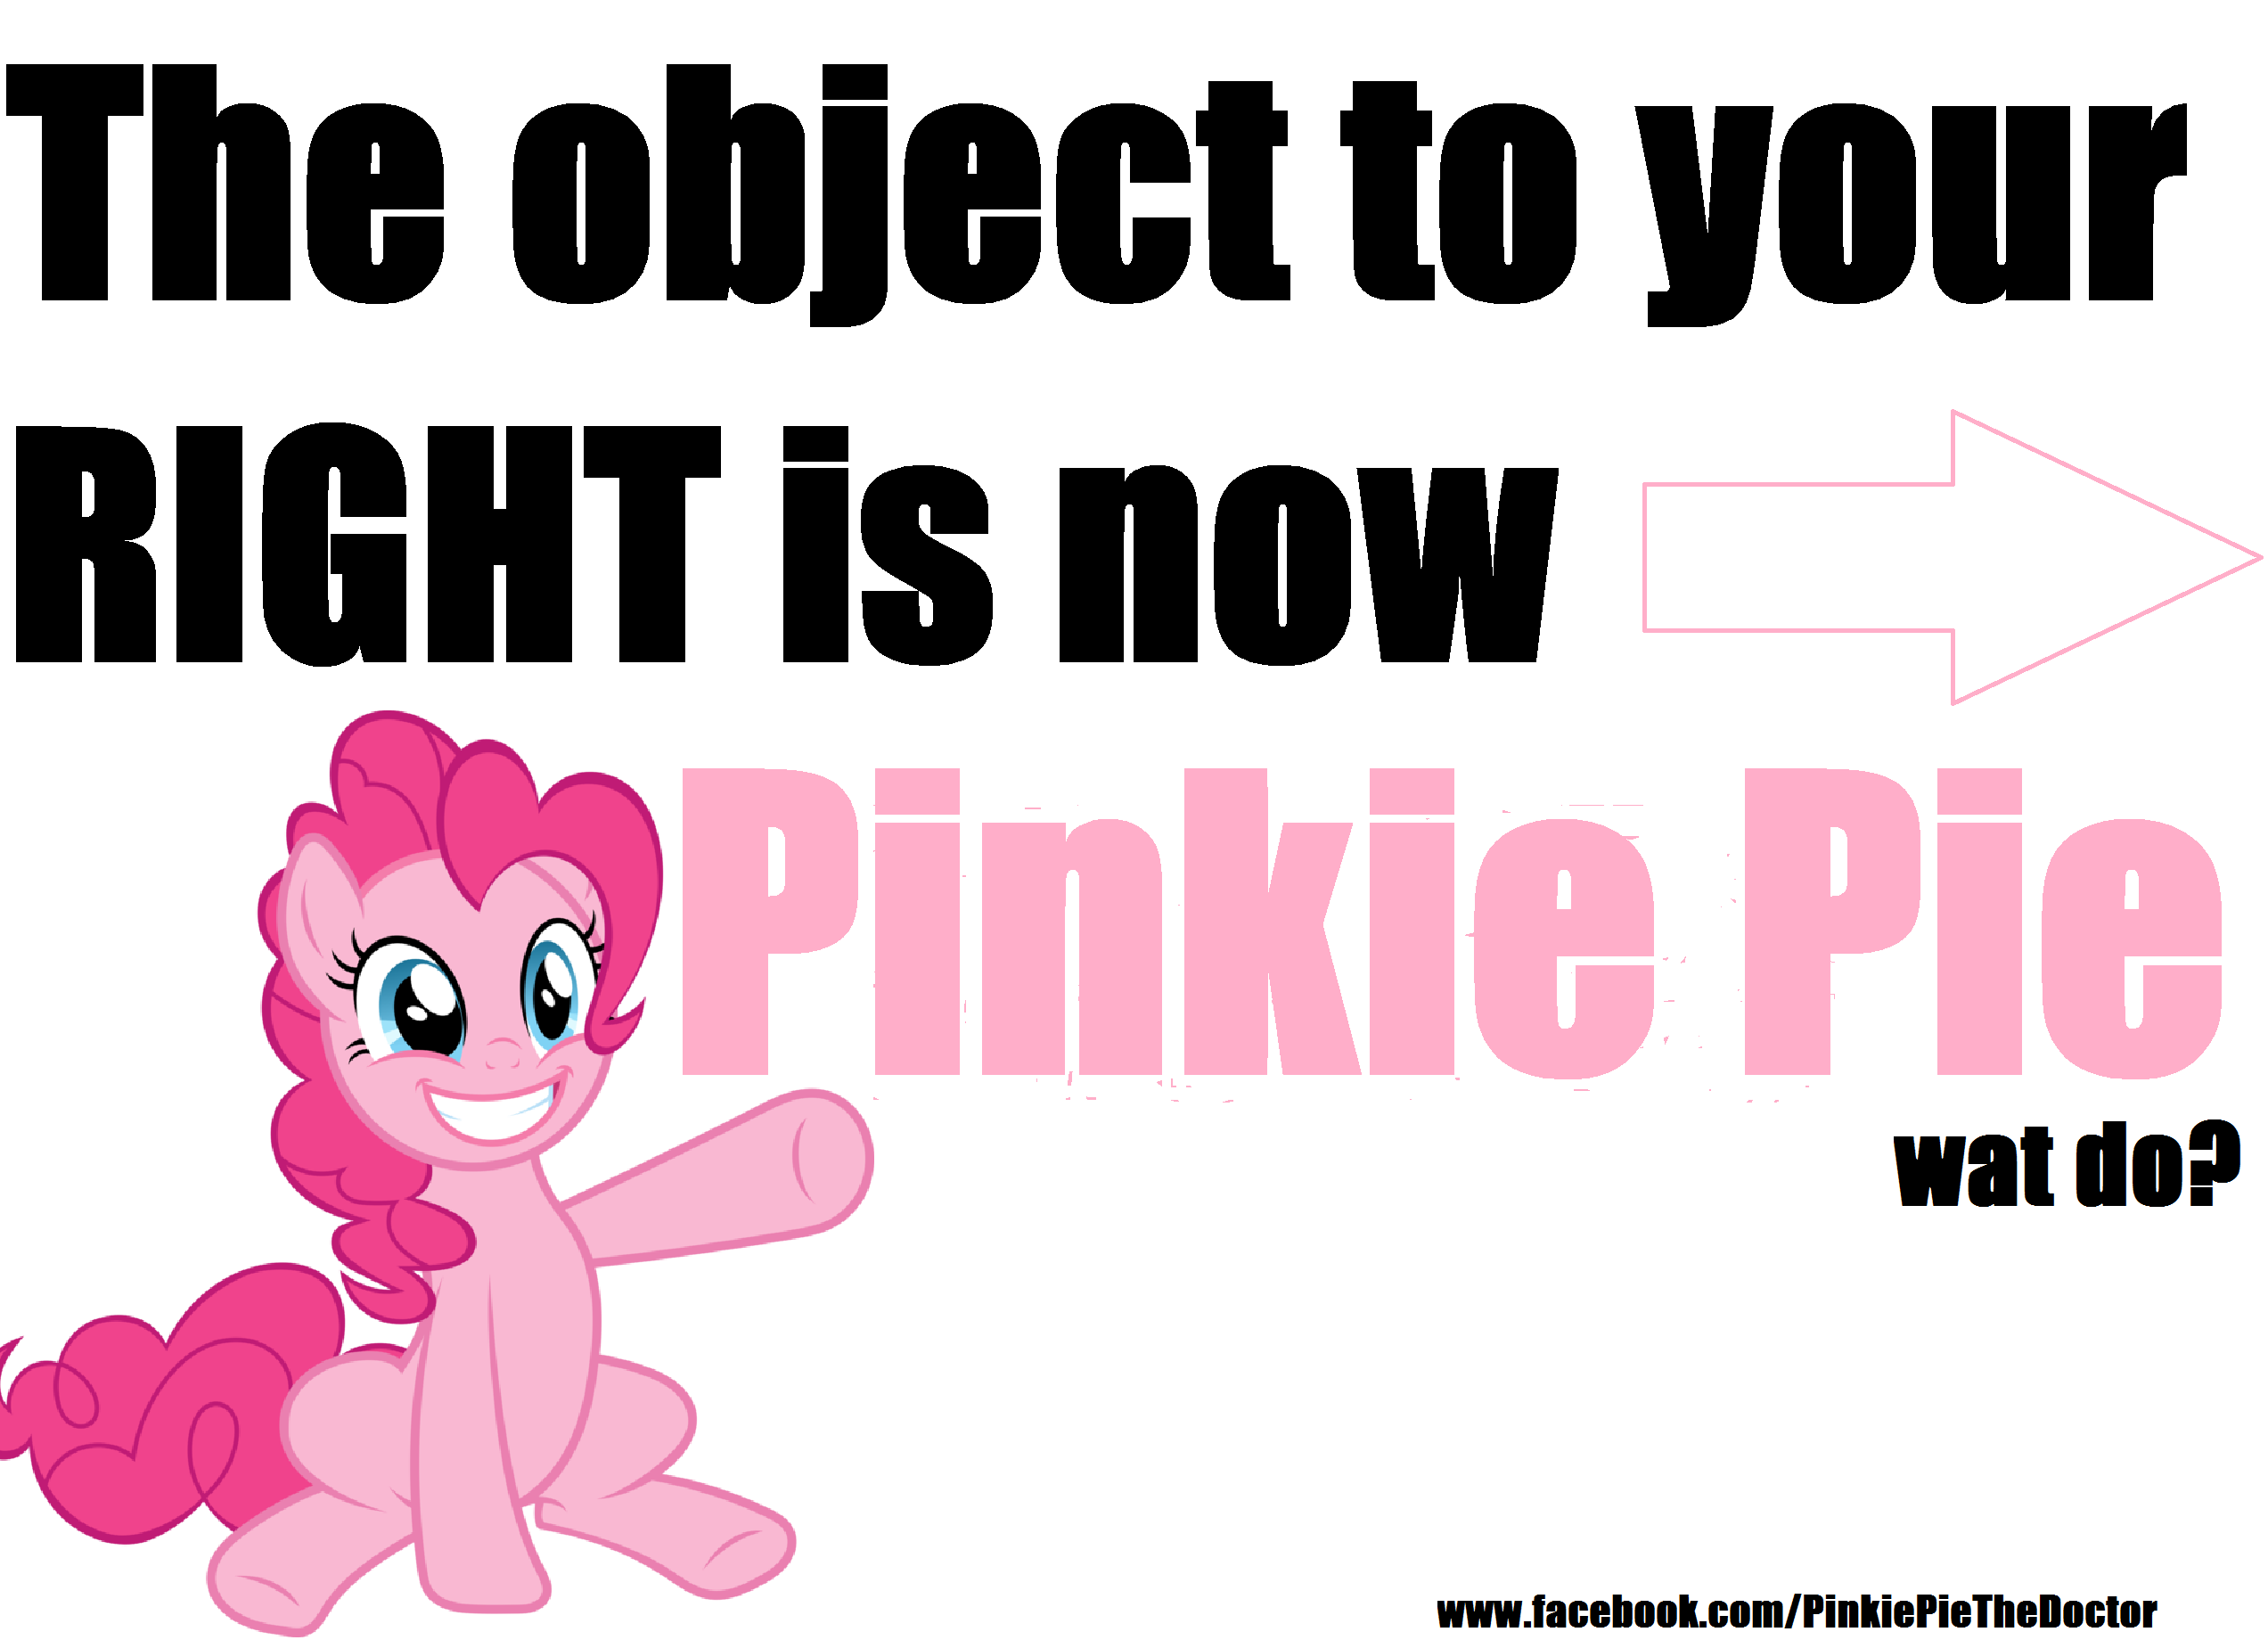 f3e pinkie pie object to right my little pony friendship is magic